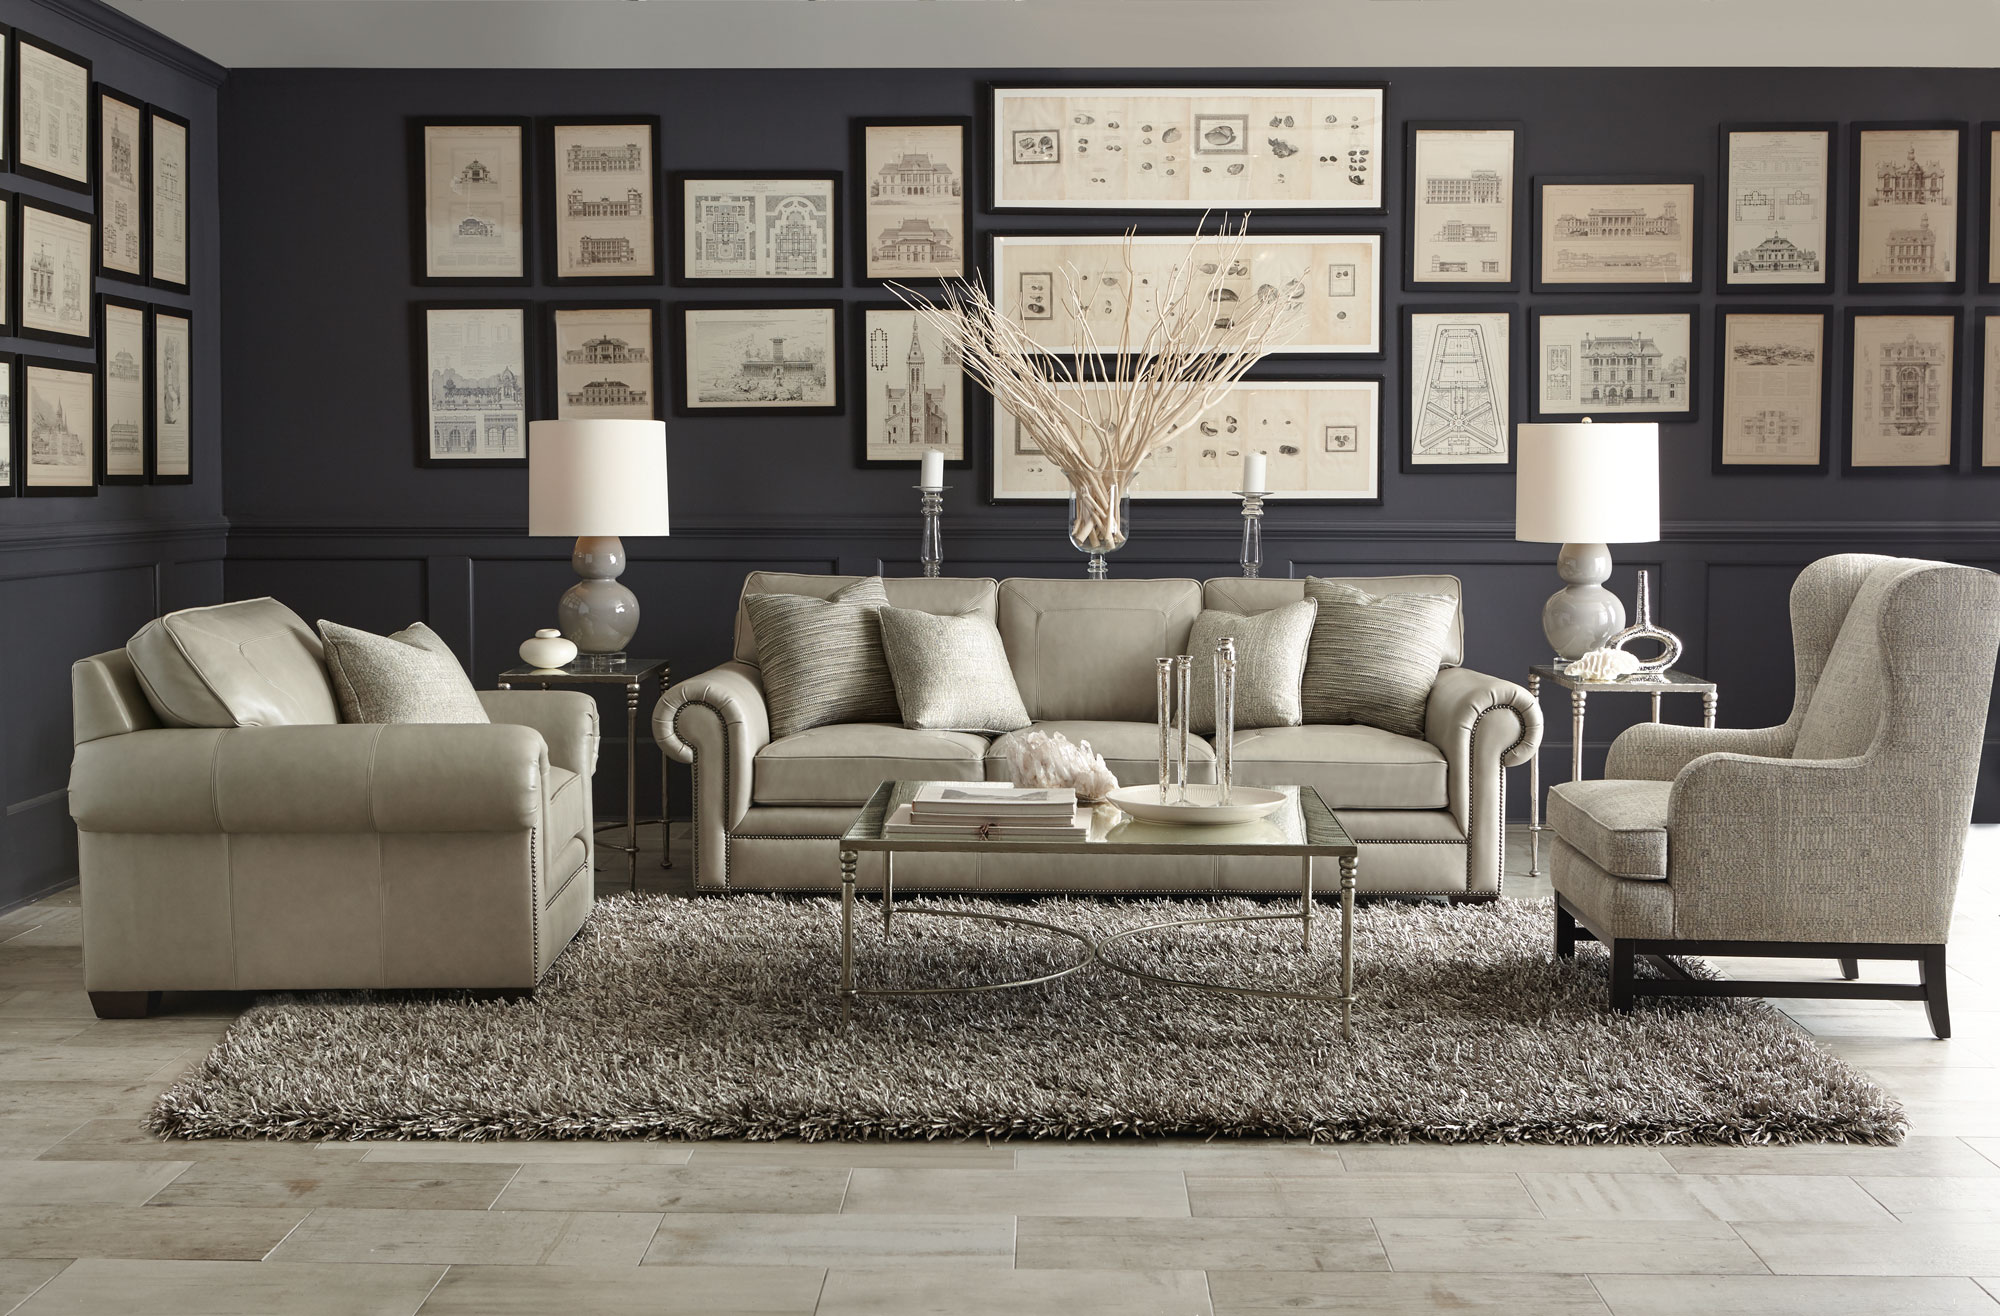 traditional english living room design blue yellow grey and white grandview orleans | bernhardt